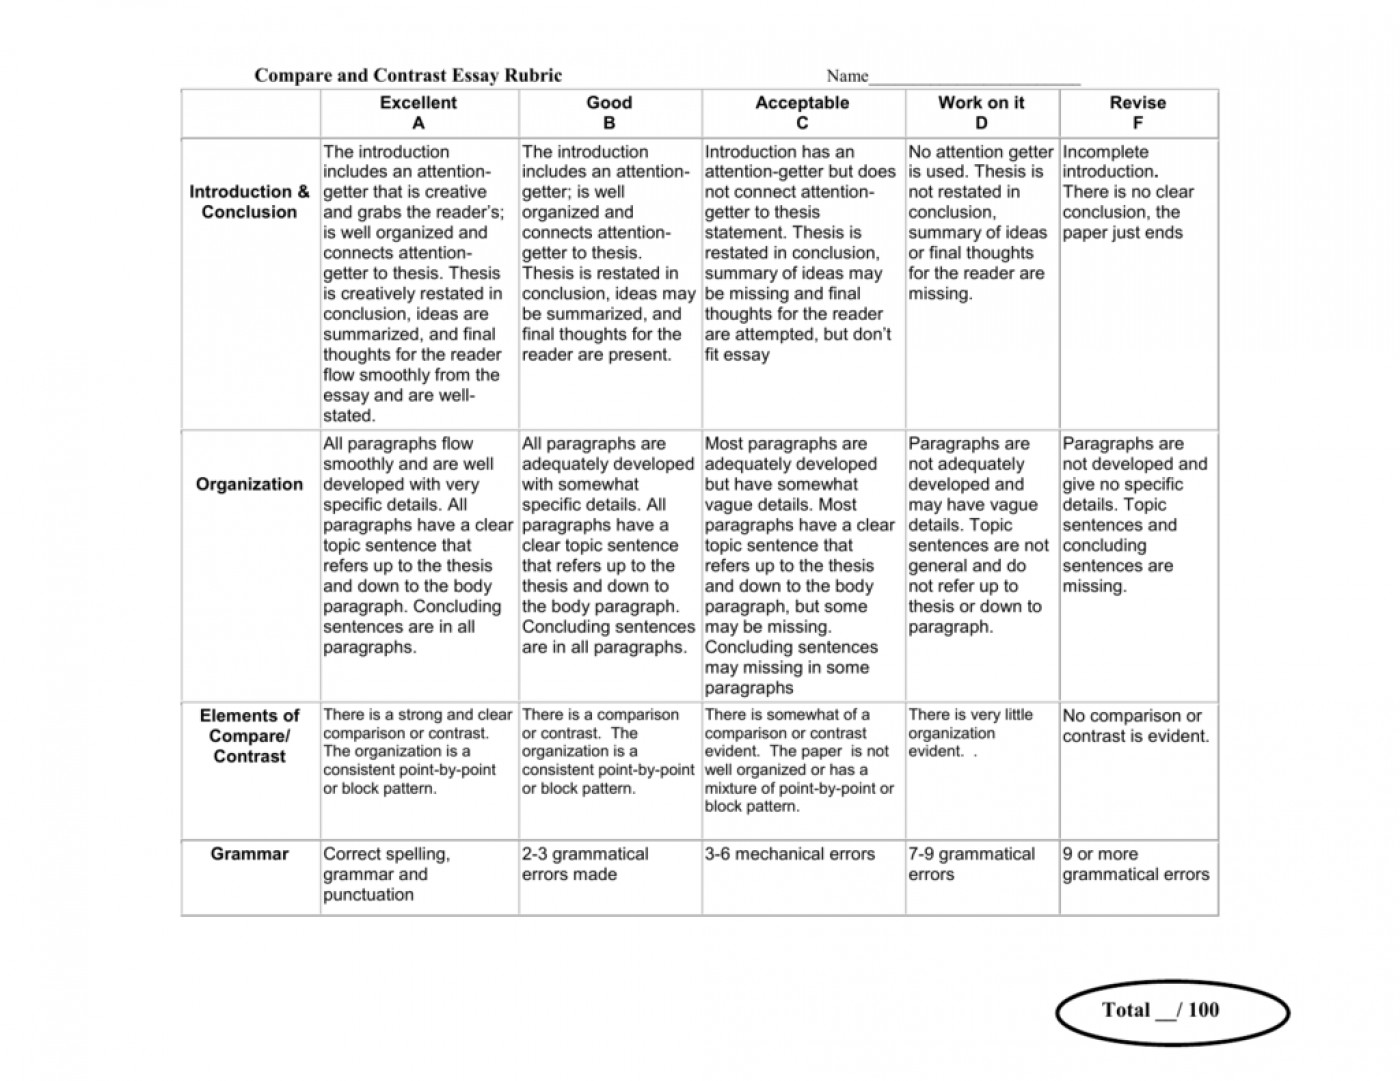 002 Essay Example Compare And Contrast Rubric 007703019 2 Wondrous College 7th Grade 1400